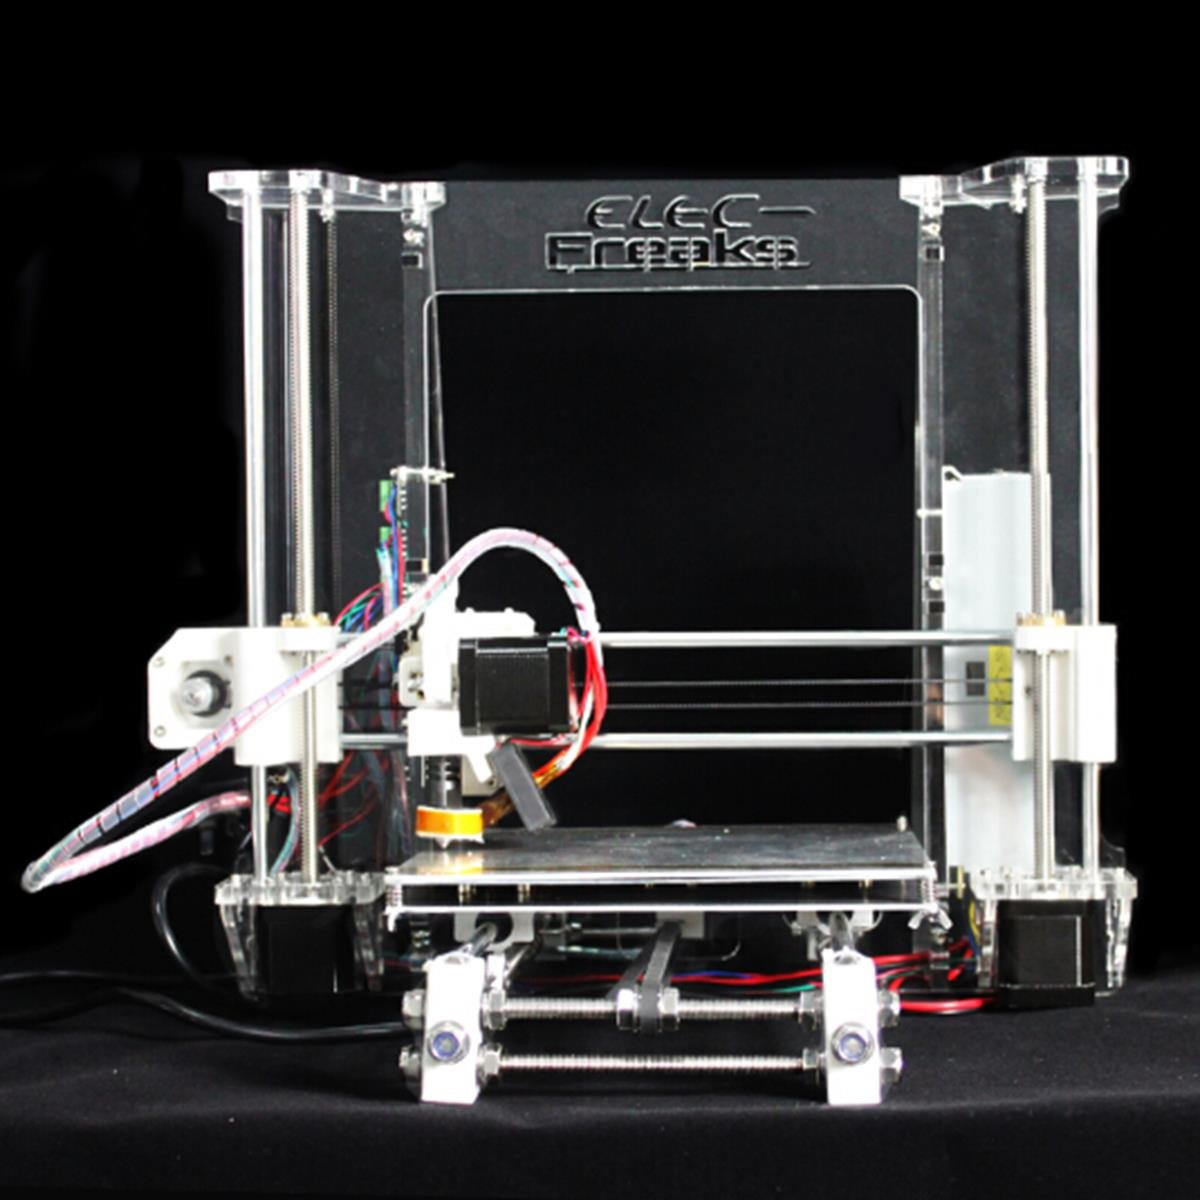 Фото 3D Printer Reprap Boards Prusa I3 Full Eboti3 Reprap Prusa I3 (Aluminium Frame) Full Kit funssor black color reprap prusa i3 mk3 aluminium composit frame kit 6mm melamine frame